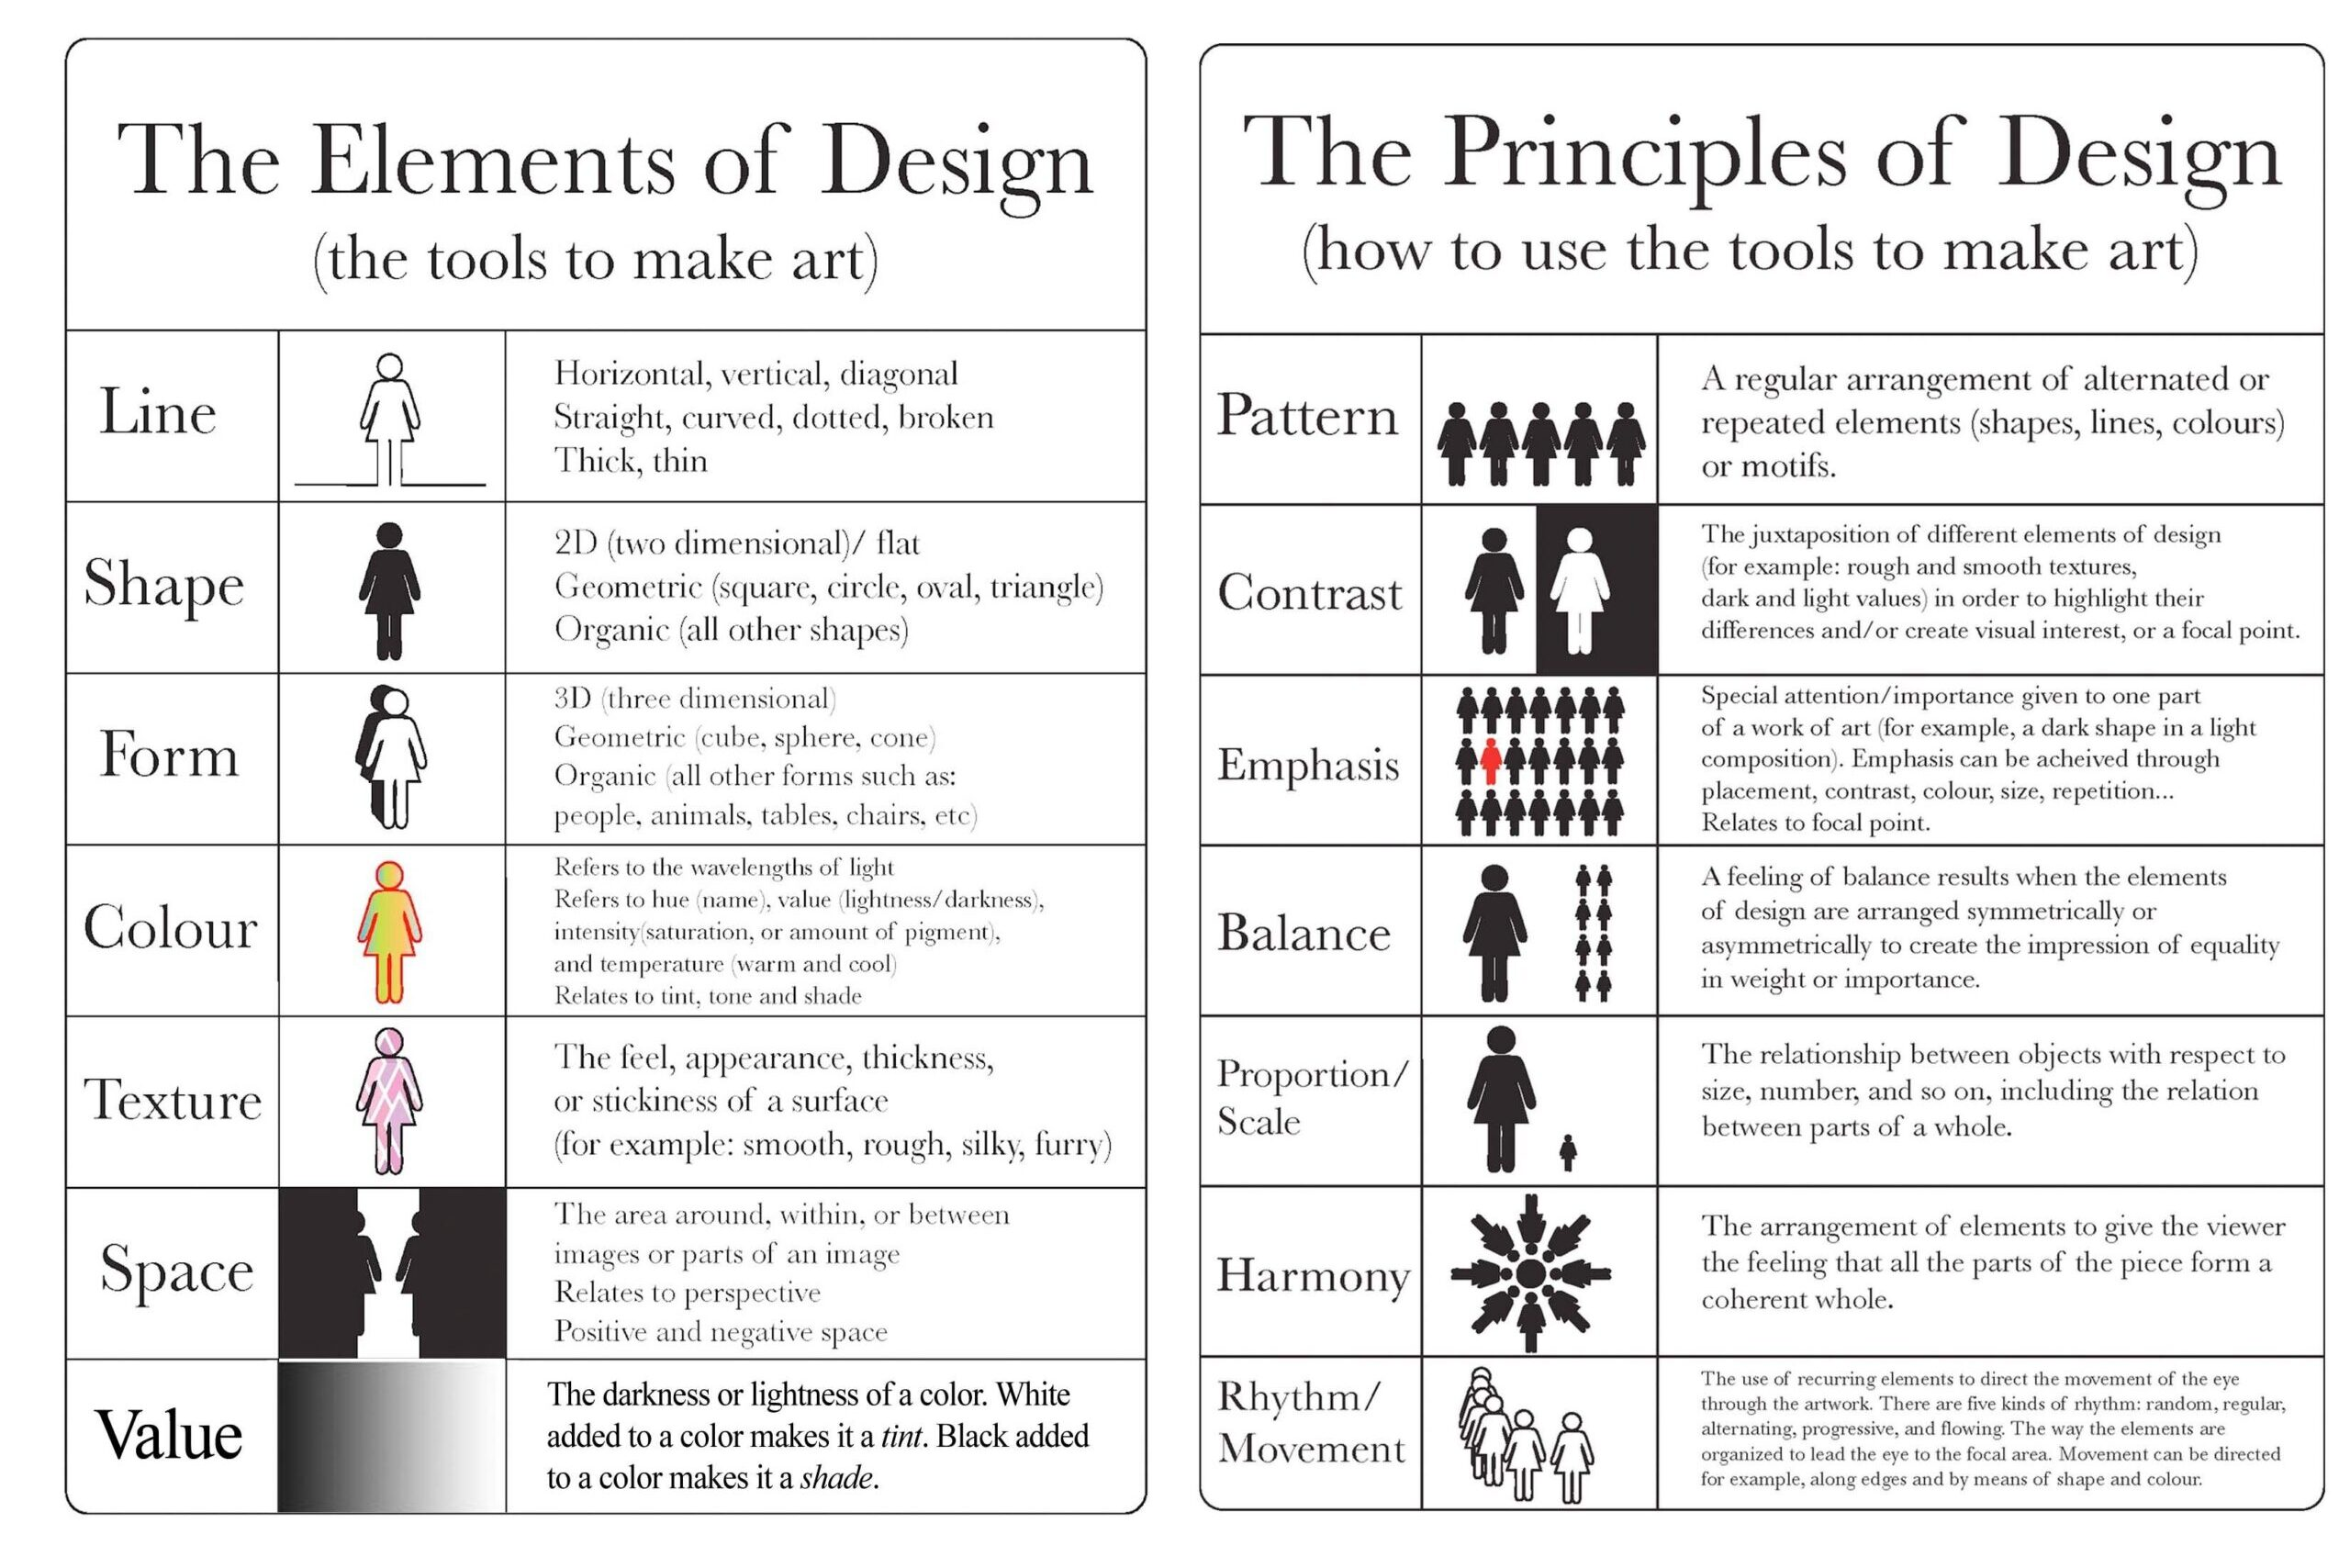 a picture listing the elements of design and the principles of design